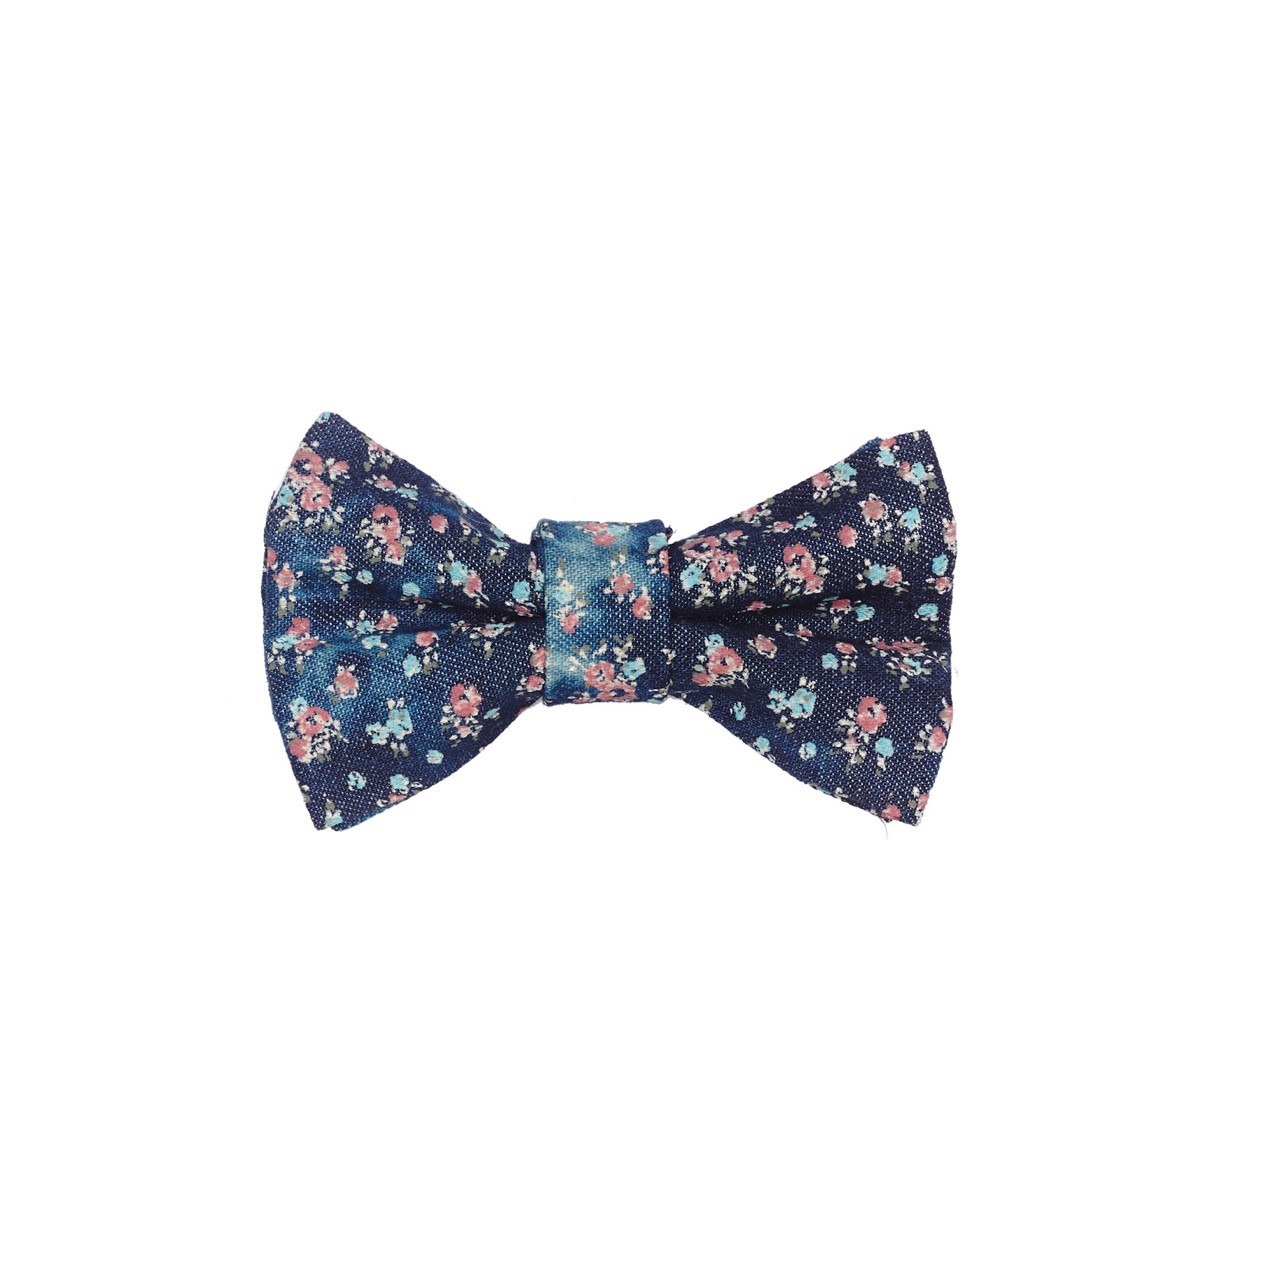 Faded floral Navy blue 100 % Cotton